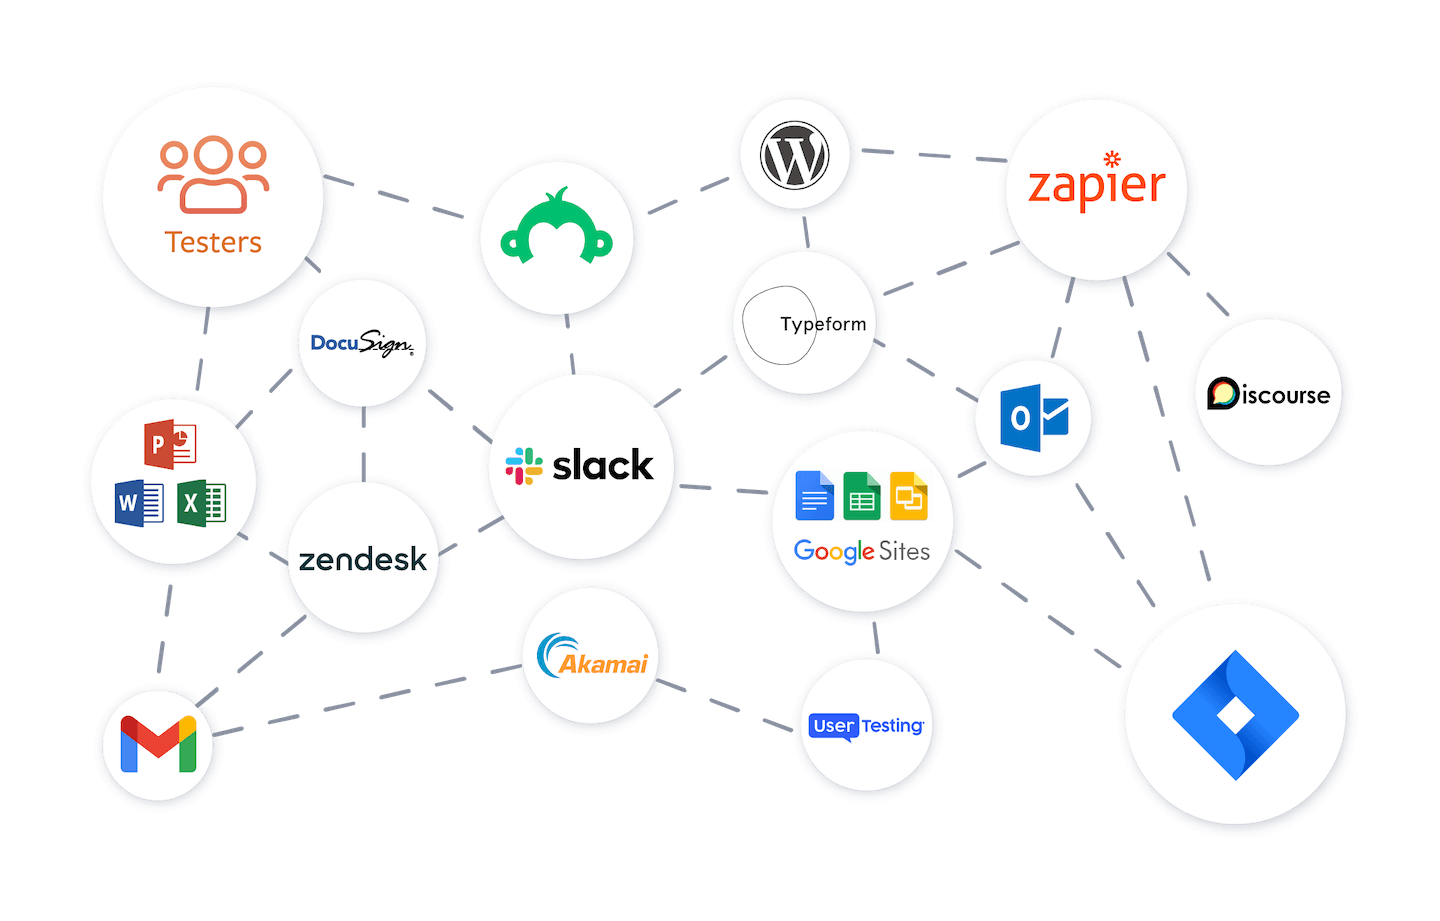 A diagram of all the different tools and platforms people use in beta testing